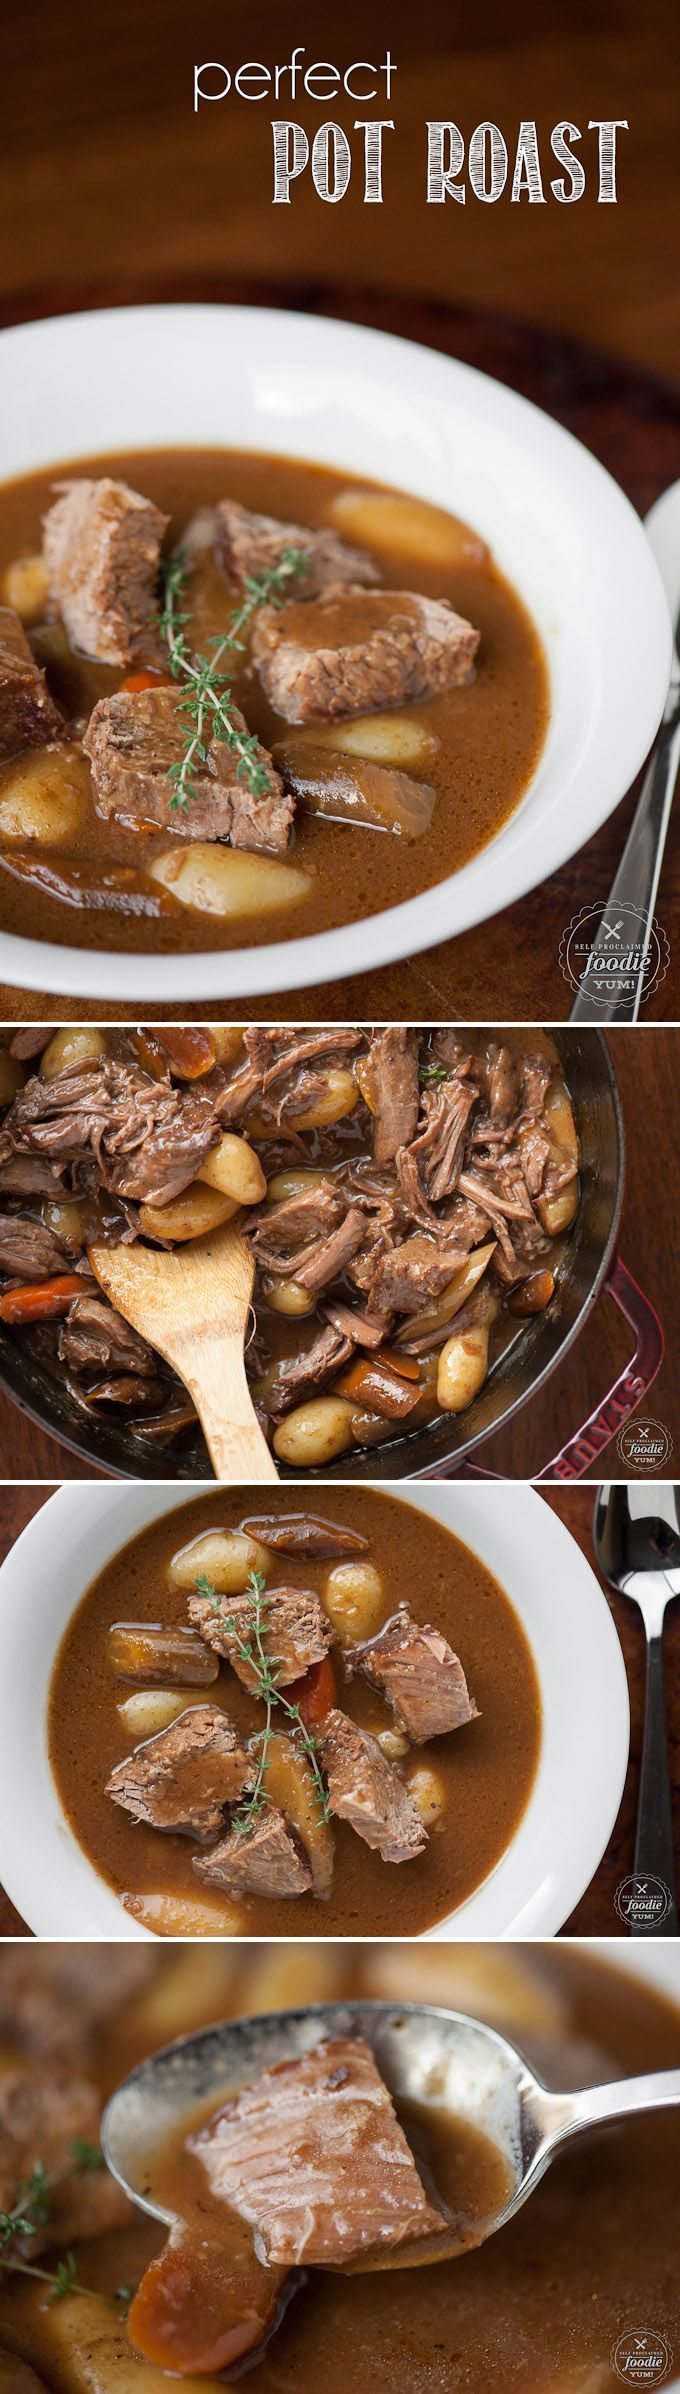 A mouthwatering Perfect Pot Roast takes time because it is slowly braised in the oven, but it is the most flavorful family dinner best enjoyed during the winter. #potroast #dinner #classic